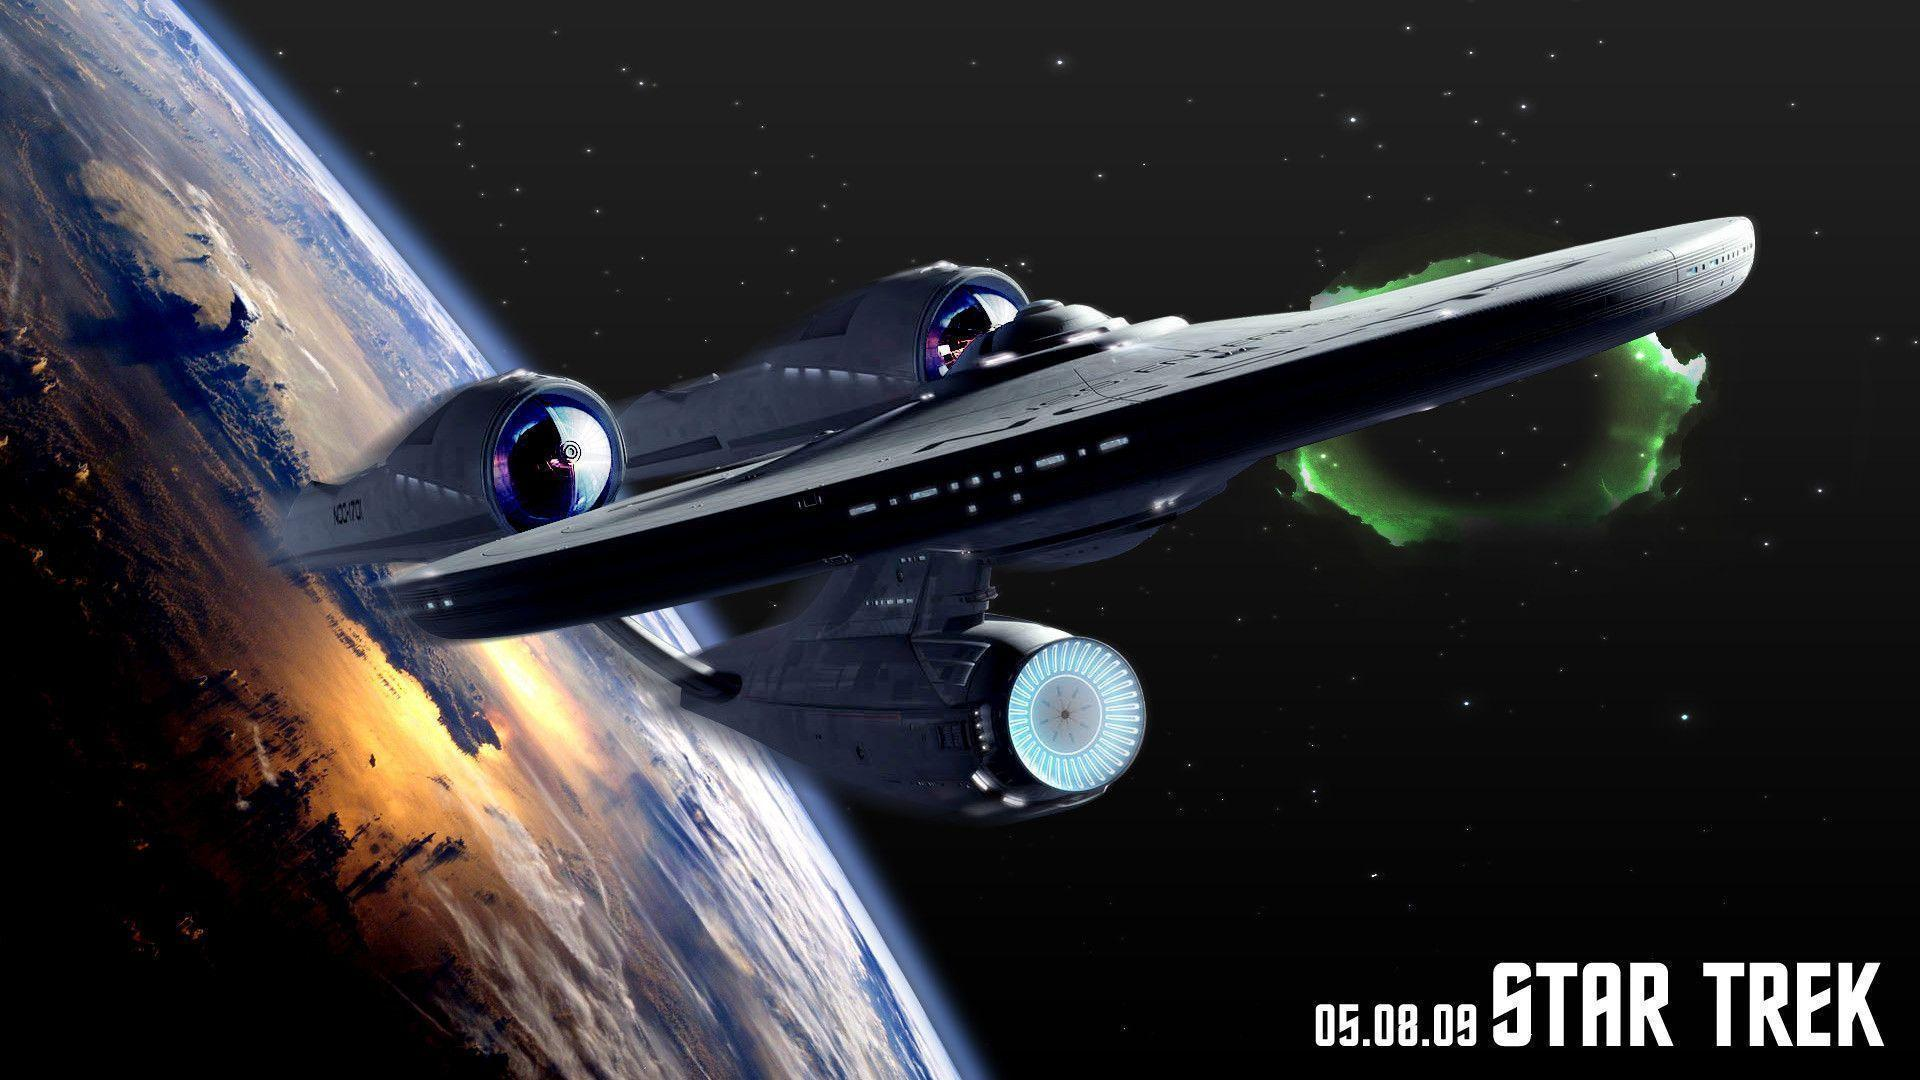 star trek wallpaper by - photo #31